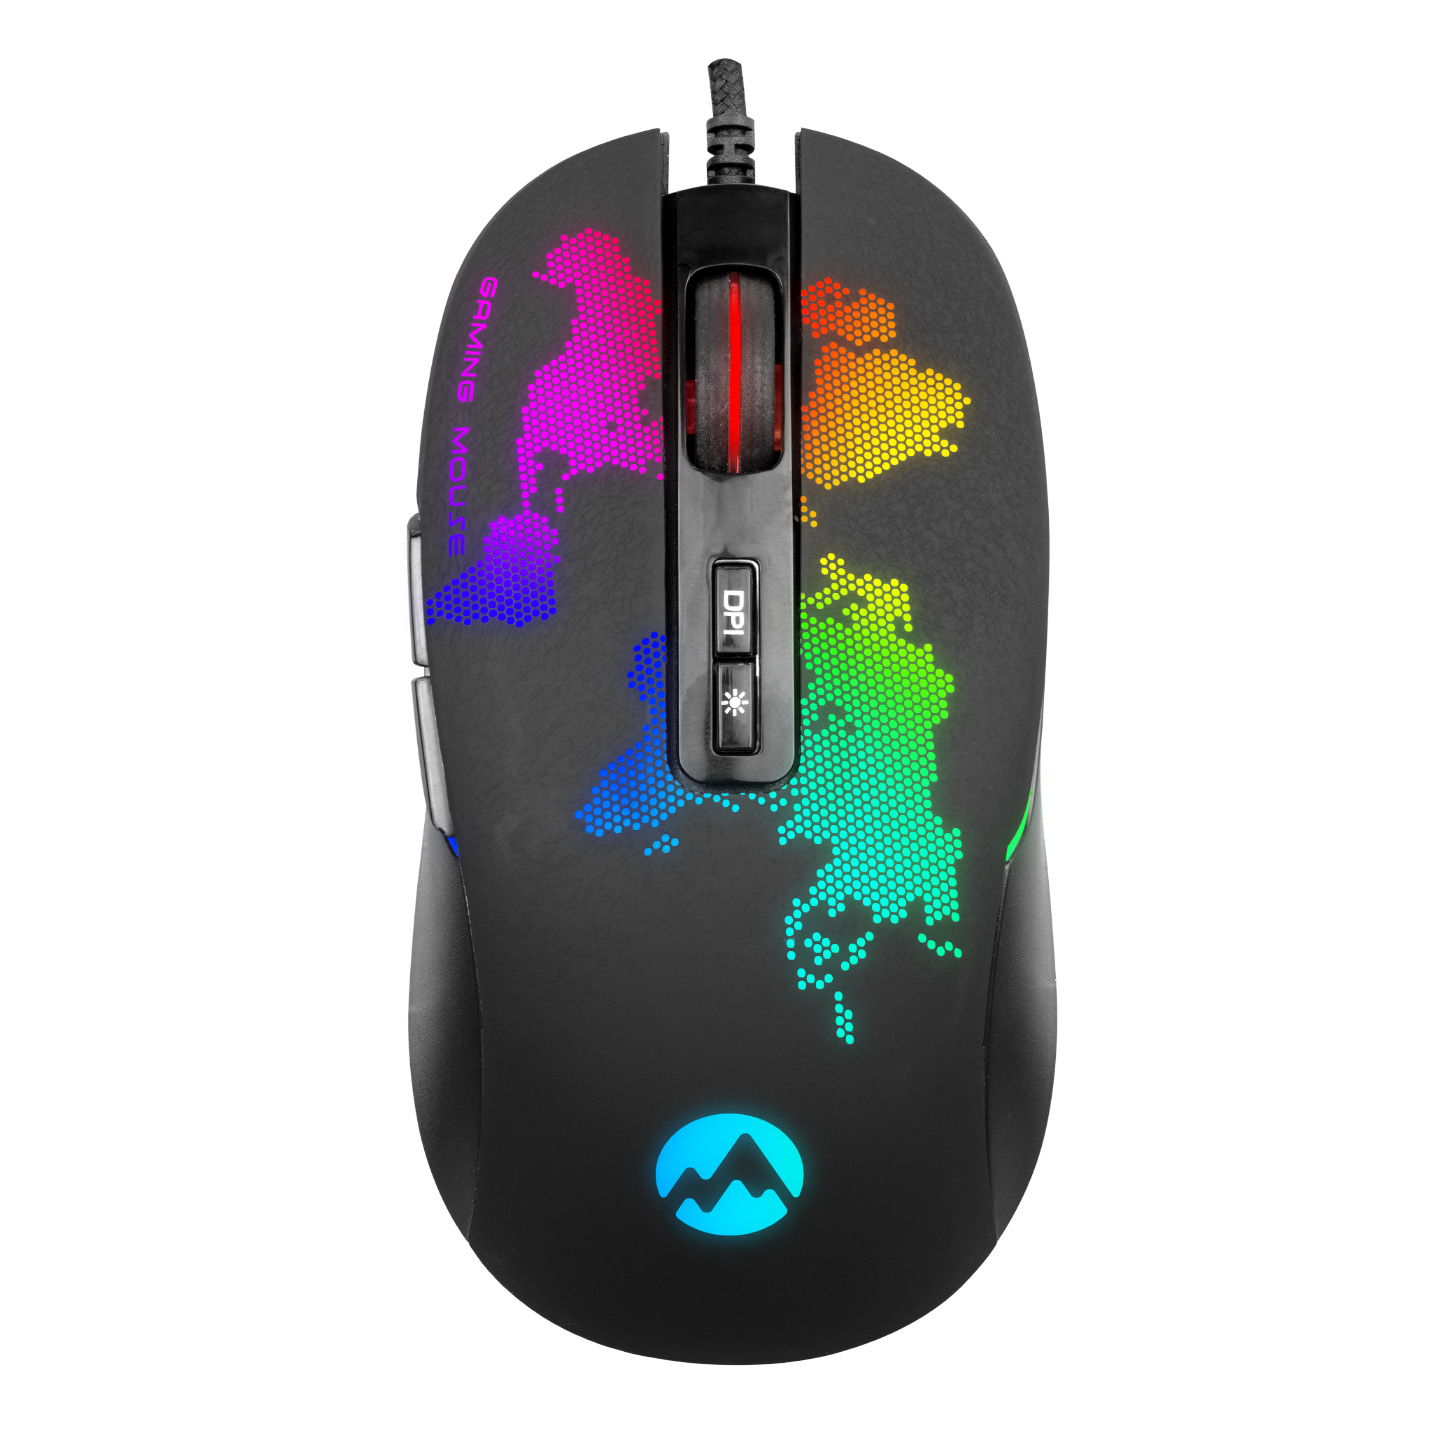 Everest GX69 JAVELIN Usb Siyah RGB Ledli 7D Optik Gaming Oyuncu Mouse